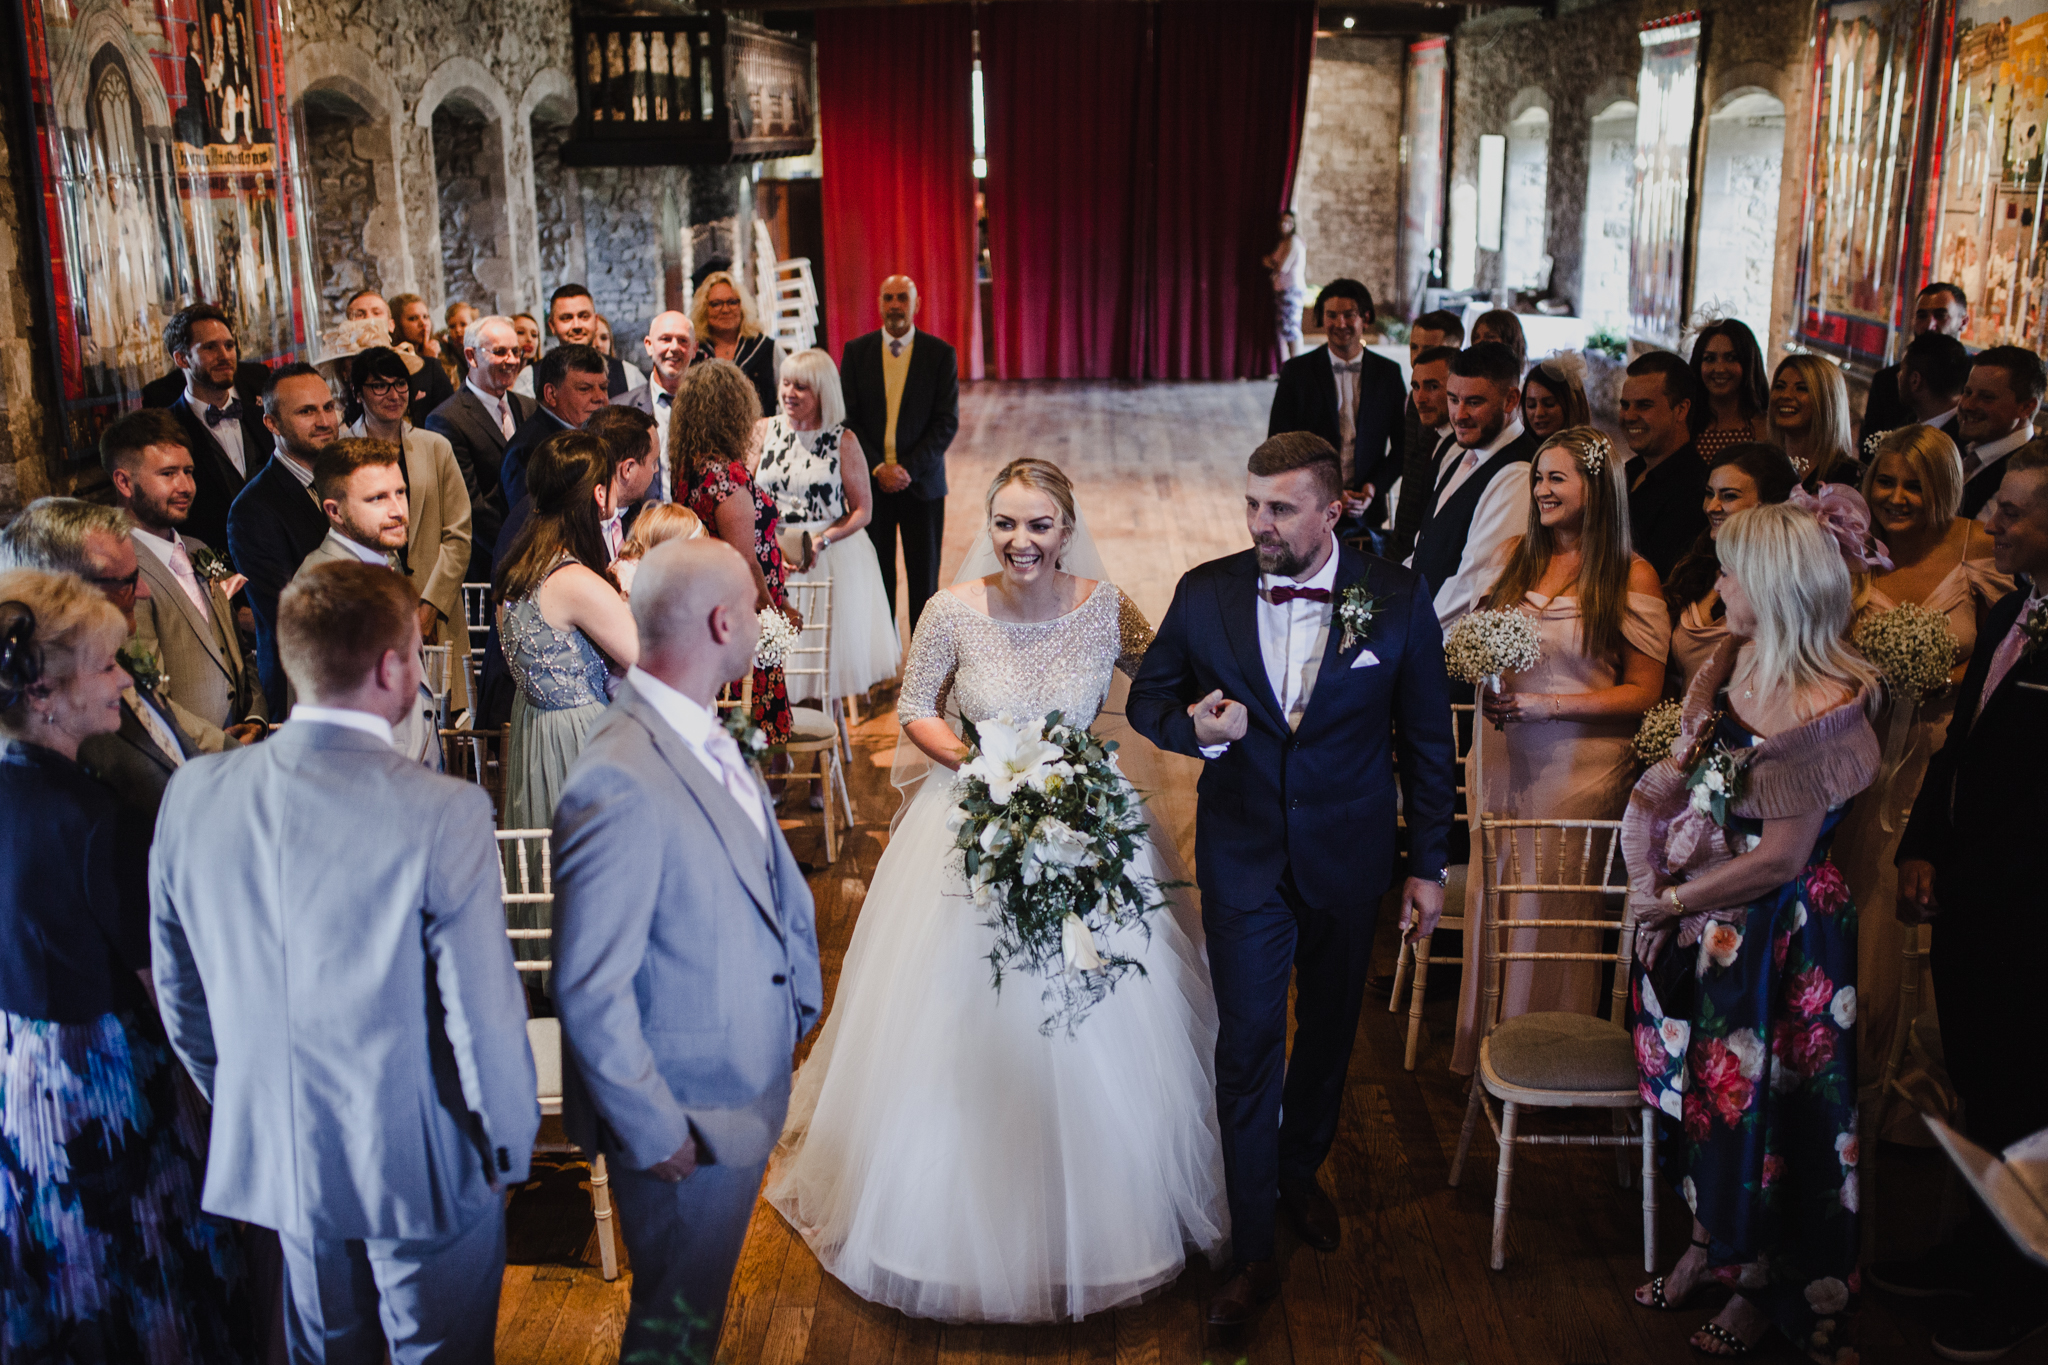 A bride and her father walking down the aisle in a dark castle style venue